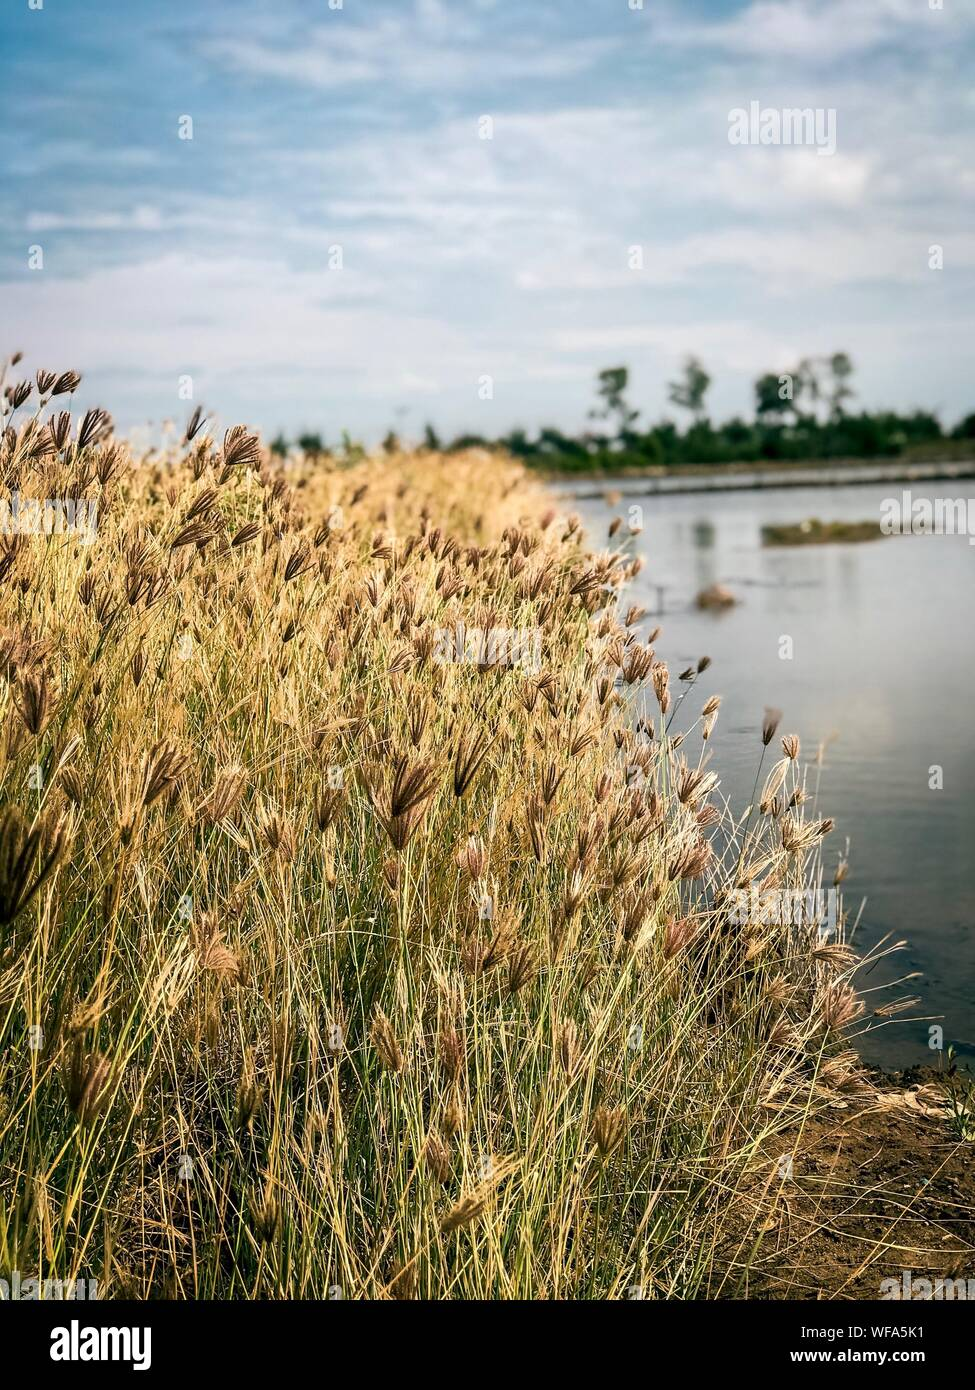 Plants Growing In Water Against Sky Stock Photo